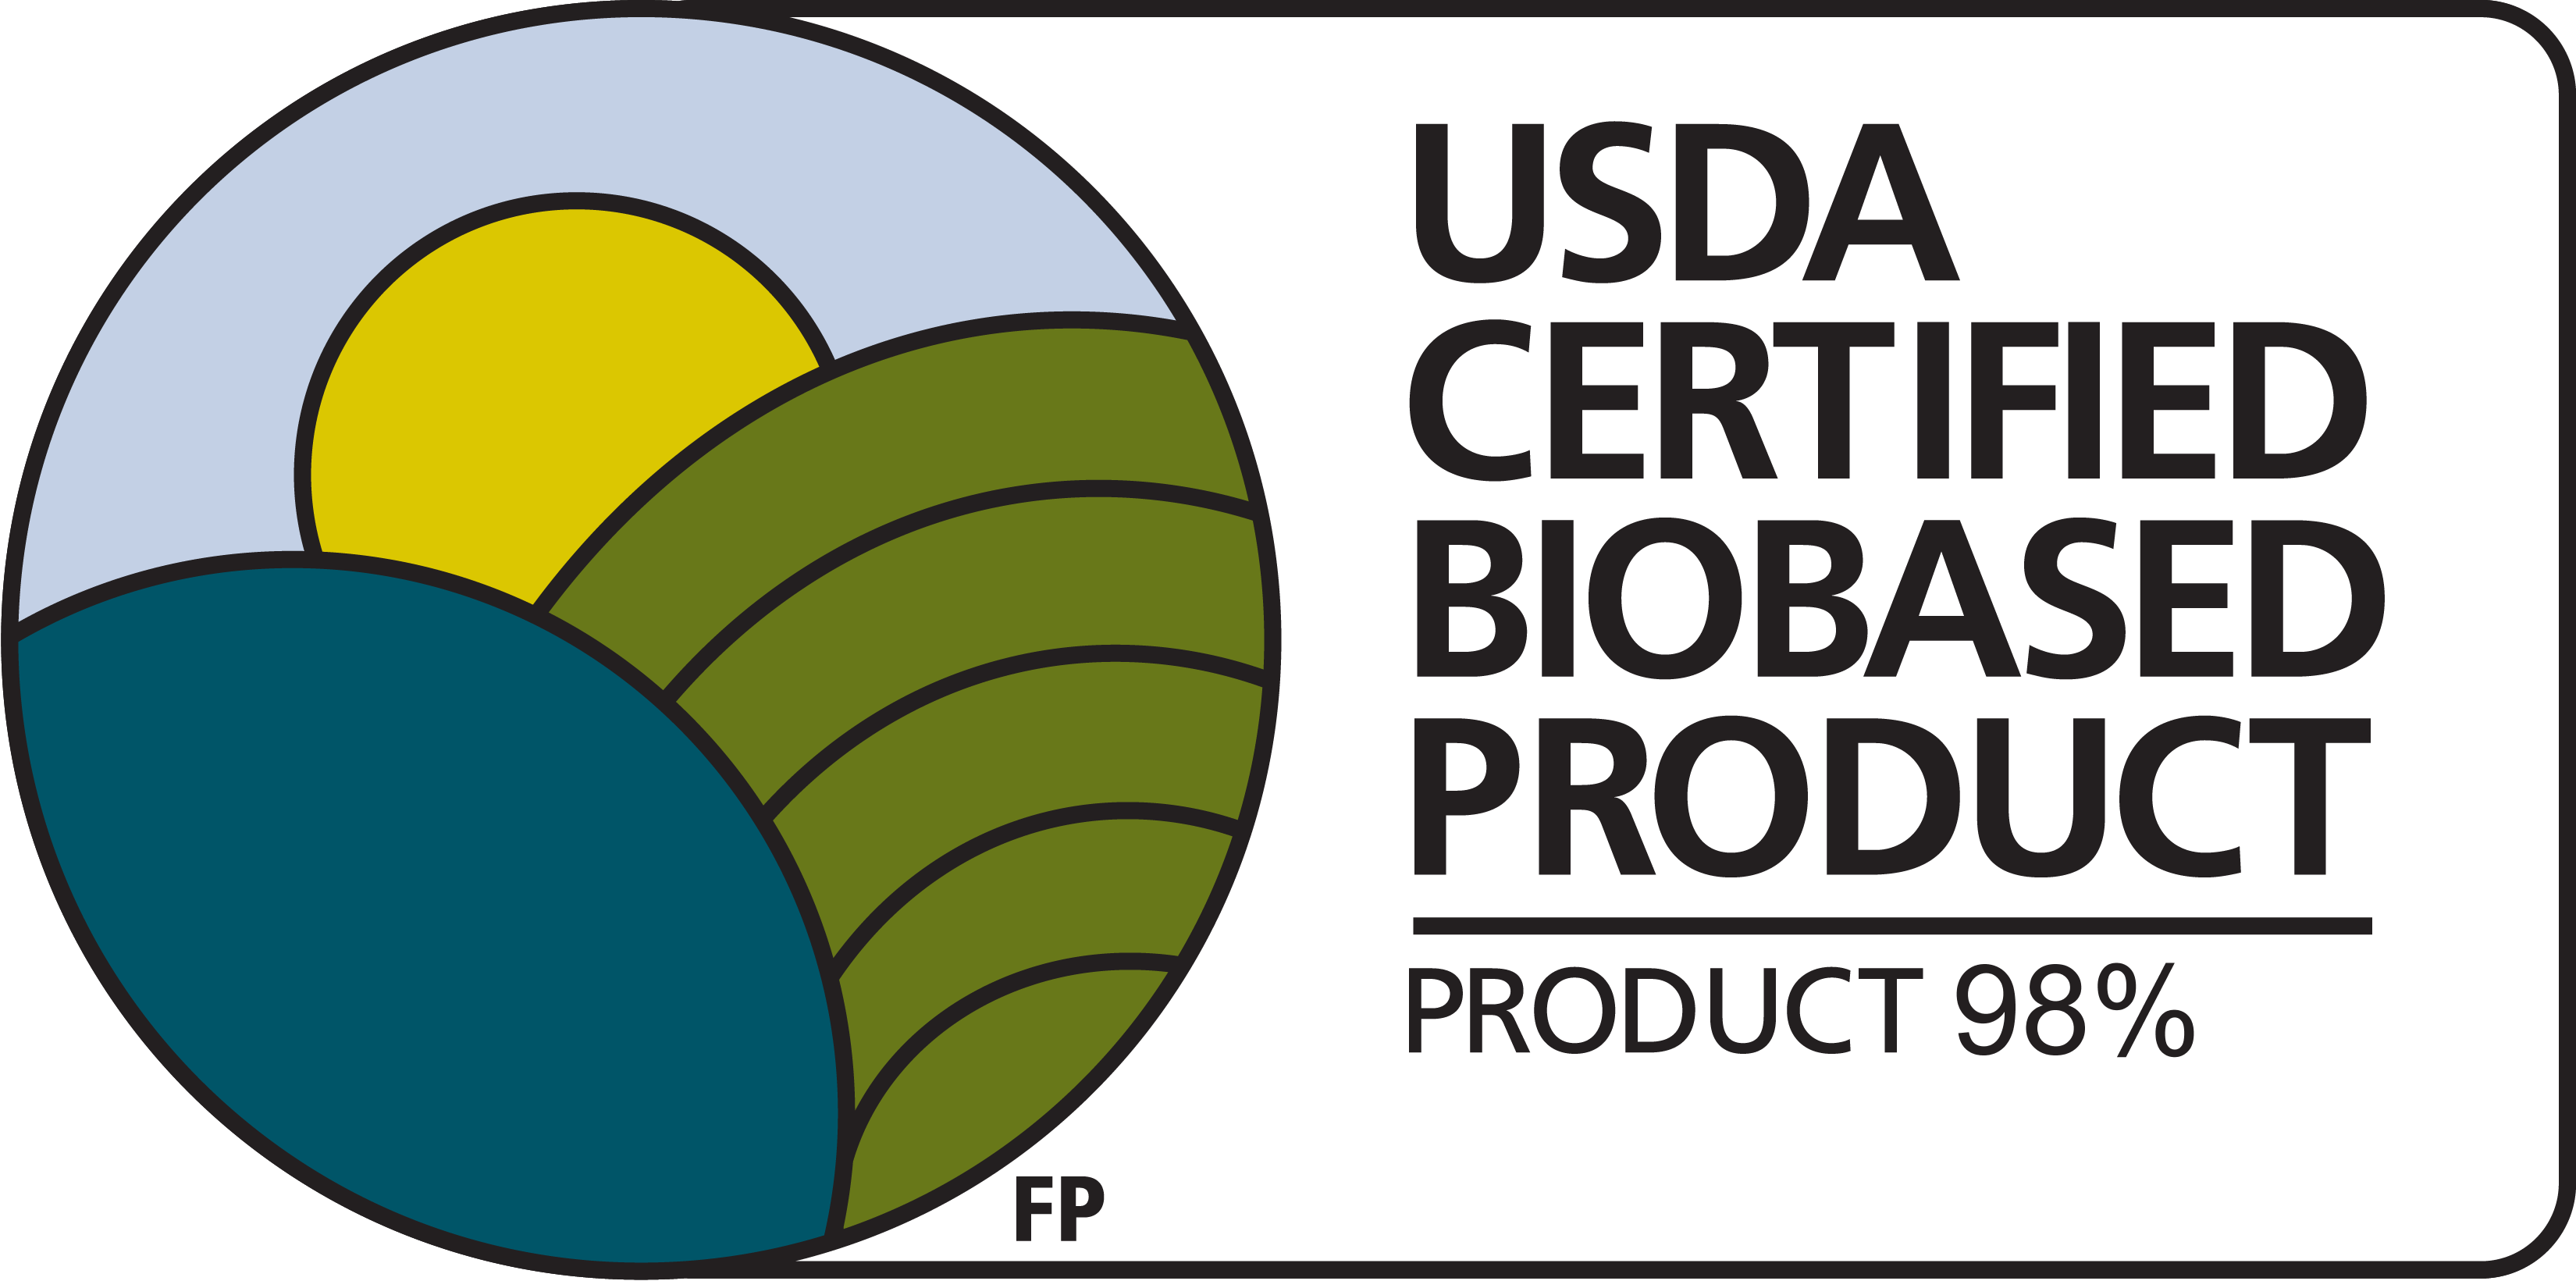 USDA Certified Biobased Product Label for Honest Organic All Purpose Balm